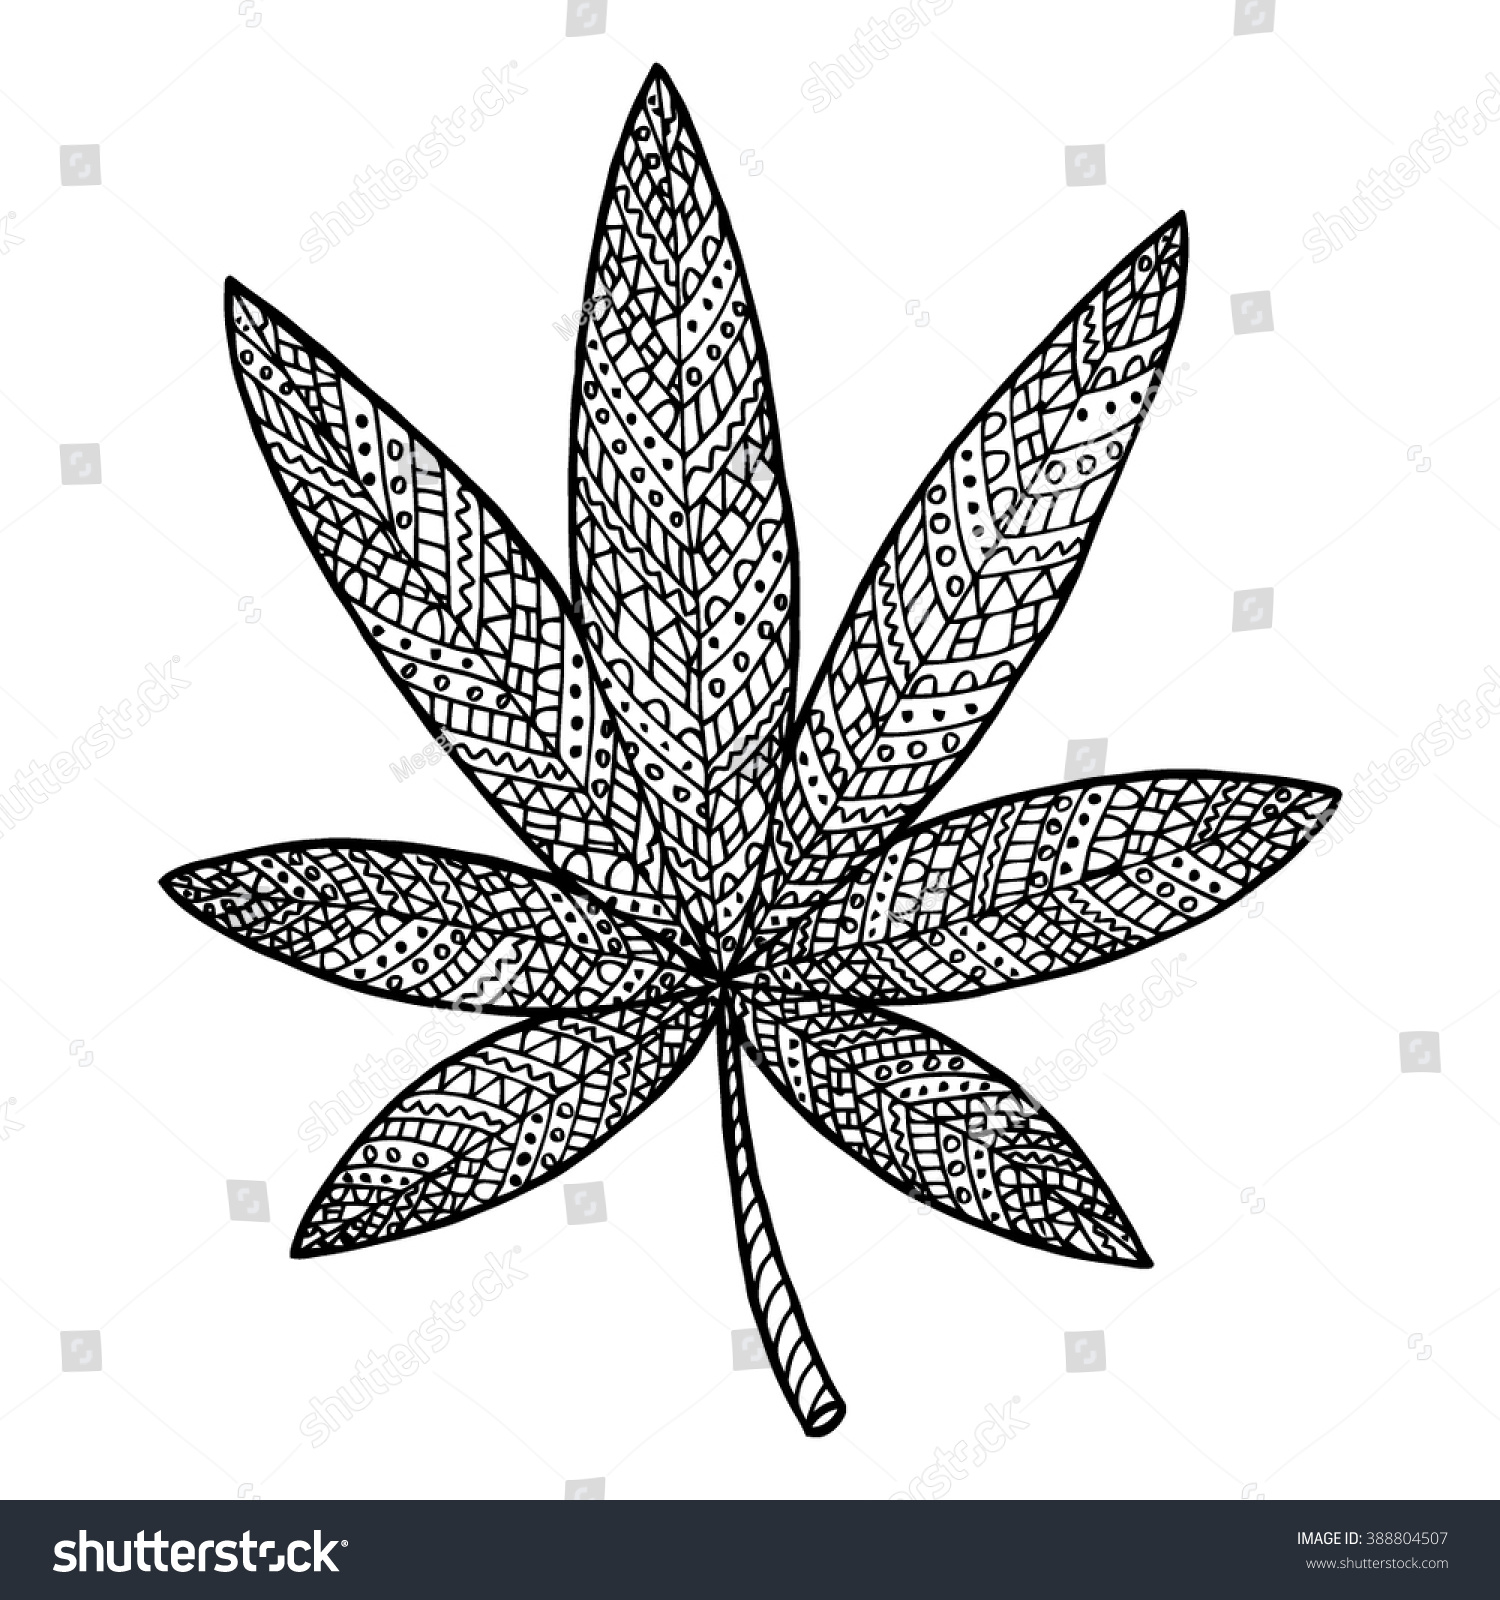 cannabis vector narcotic zen tangle and doodle indica coloring book herb tattoo - Cannabis Coloring Book